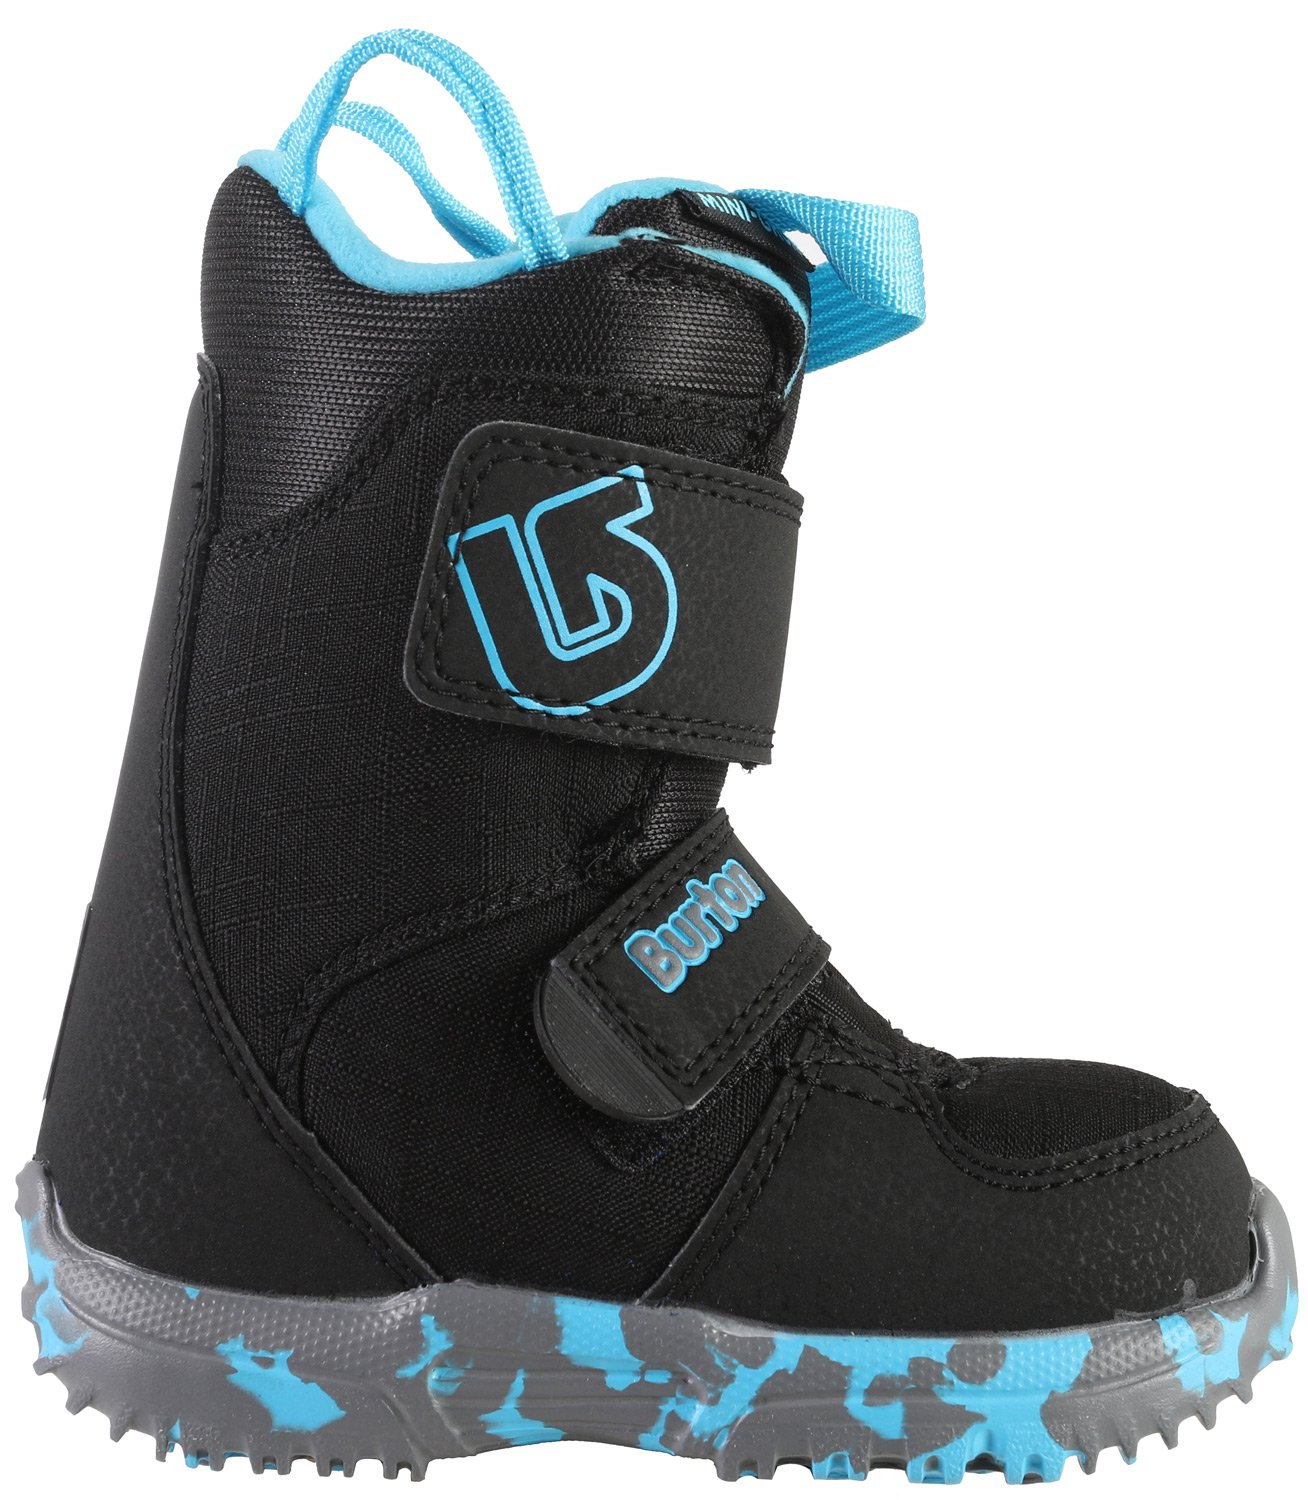 0c7c5dd414a Best Rated in Snowboard Boots & Helpful Customer Reviews - Amazon.com